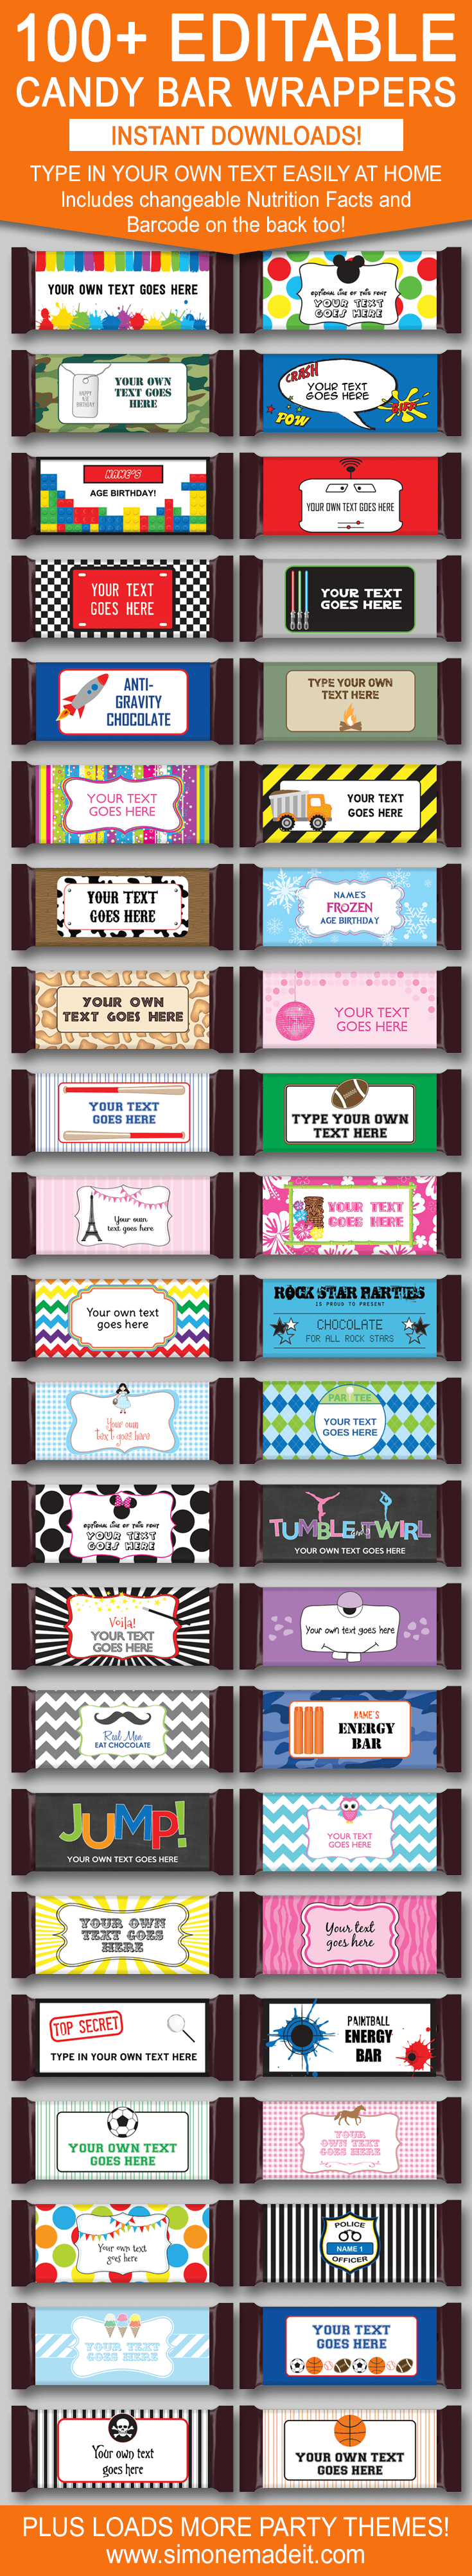 Diy Candy Bar Wrapper Templates – Personalized Candy Bars | Candy - Free Printable Birthday Candy Bar Wrappers